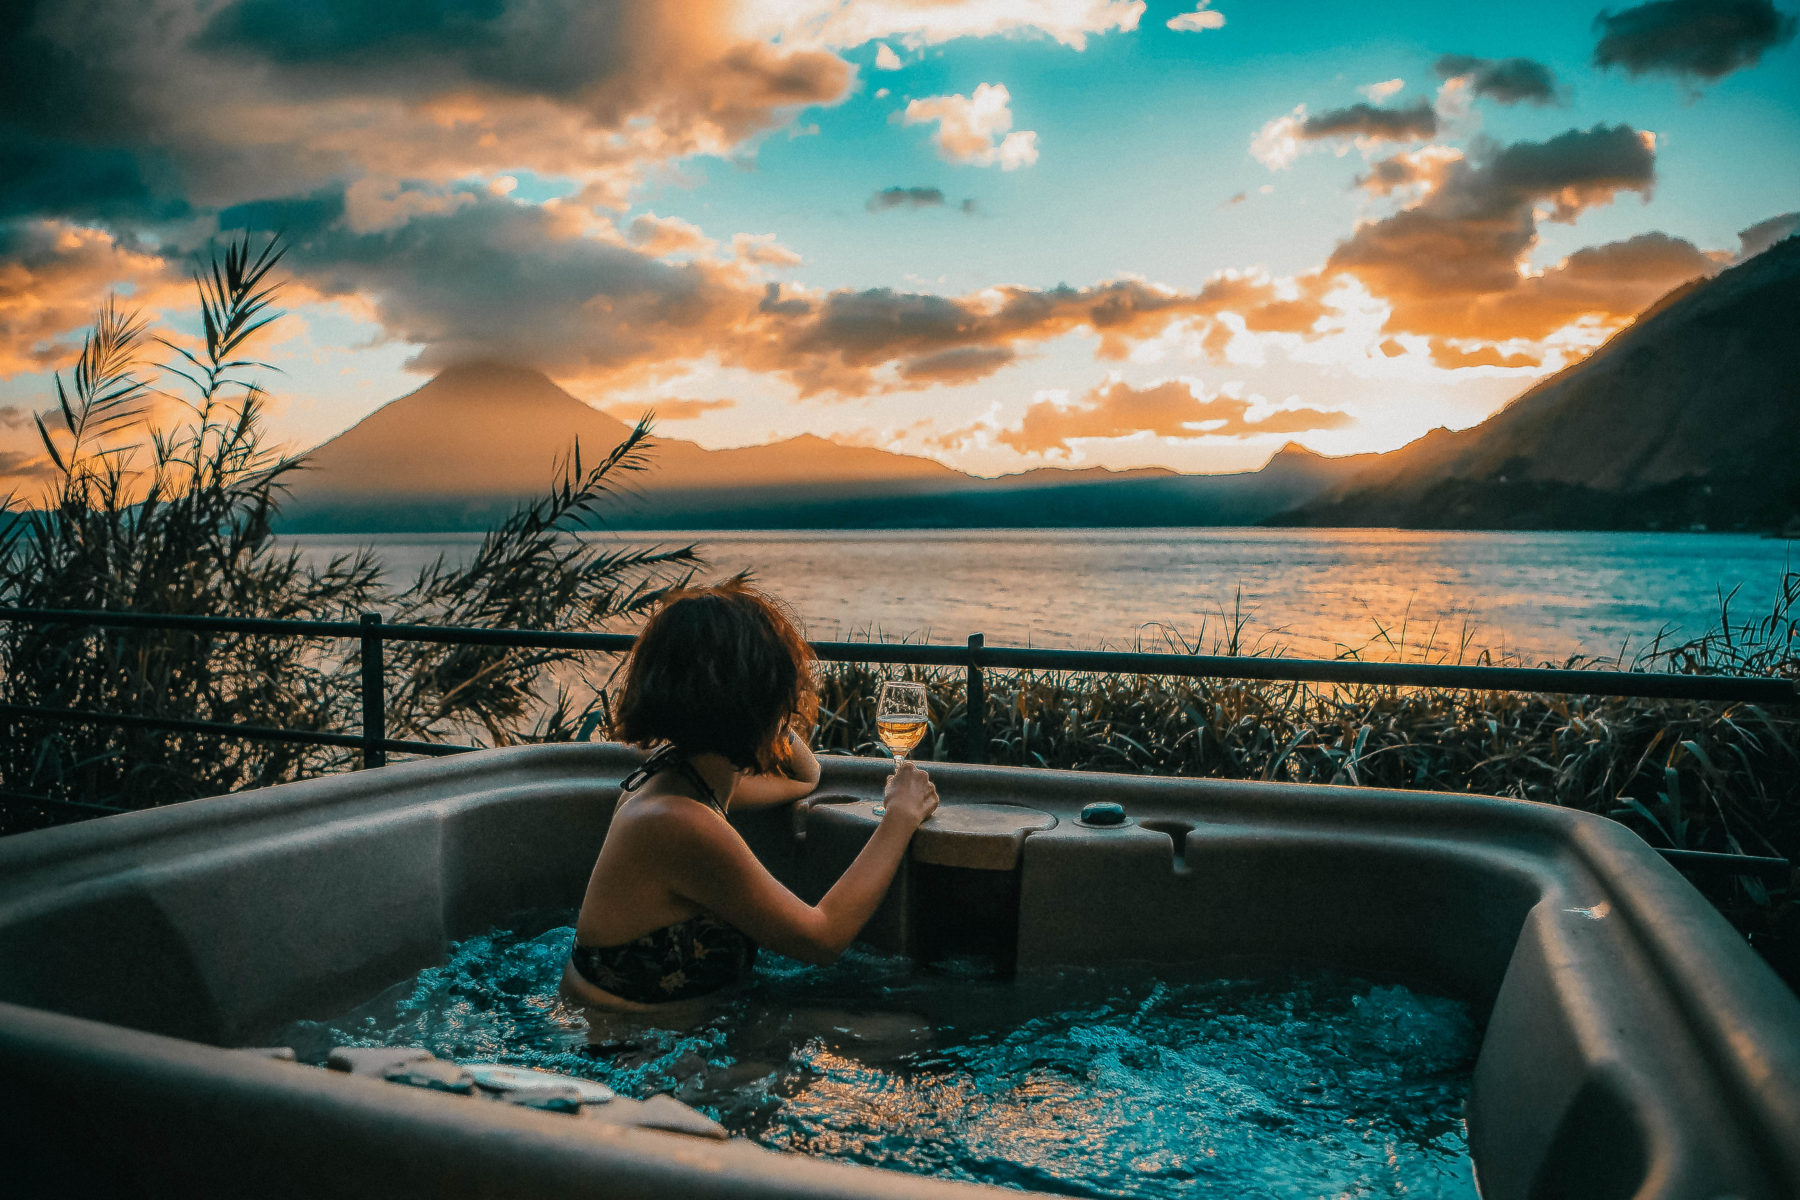 guatemala lake atitlan lago central america most beautiful lake in the world blue water sunny day sunset